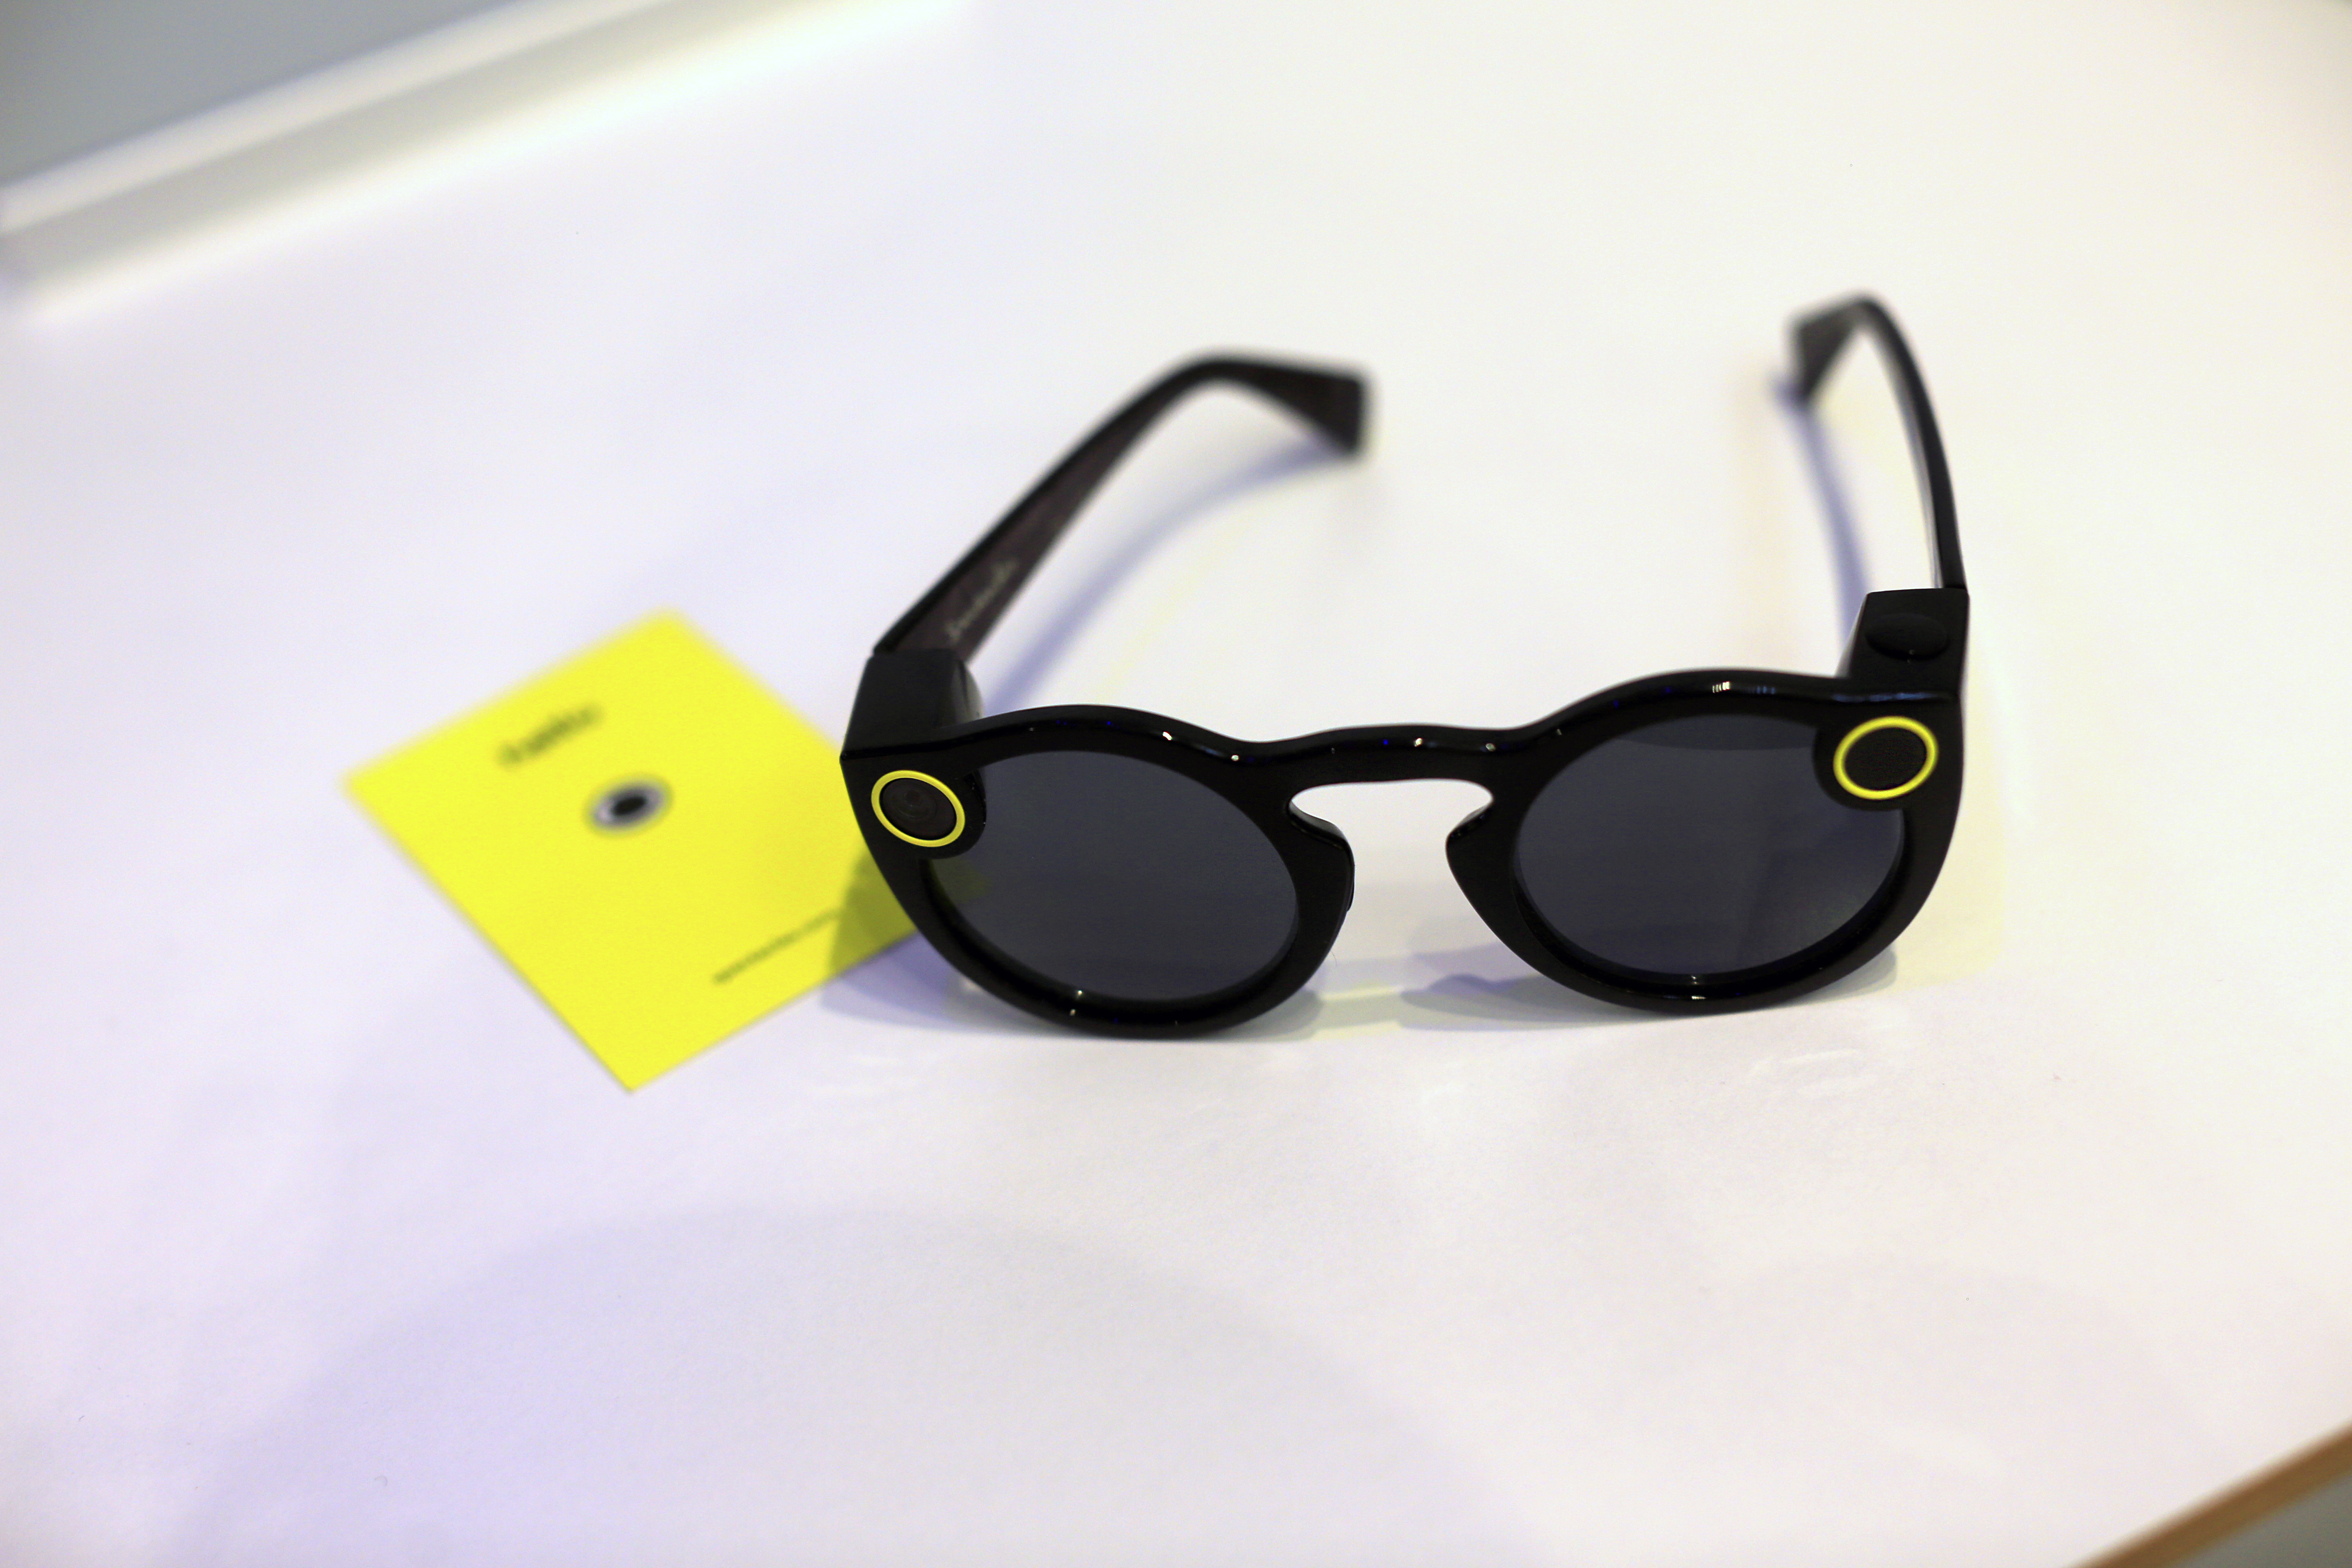 Snapchat Spectacles by Snap Inc. are displayed inside the company's pop-up store in New York on Dec. 5, 2016.